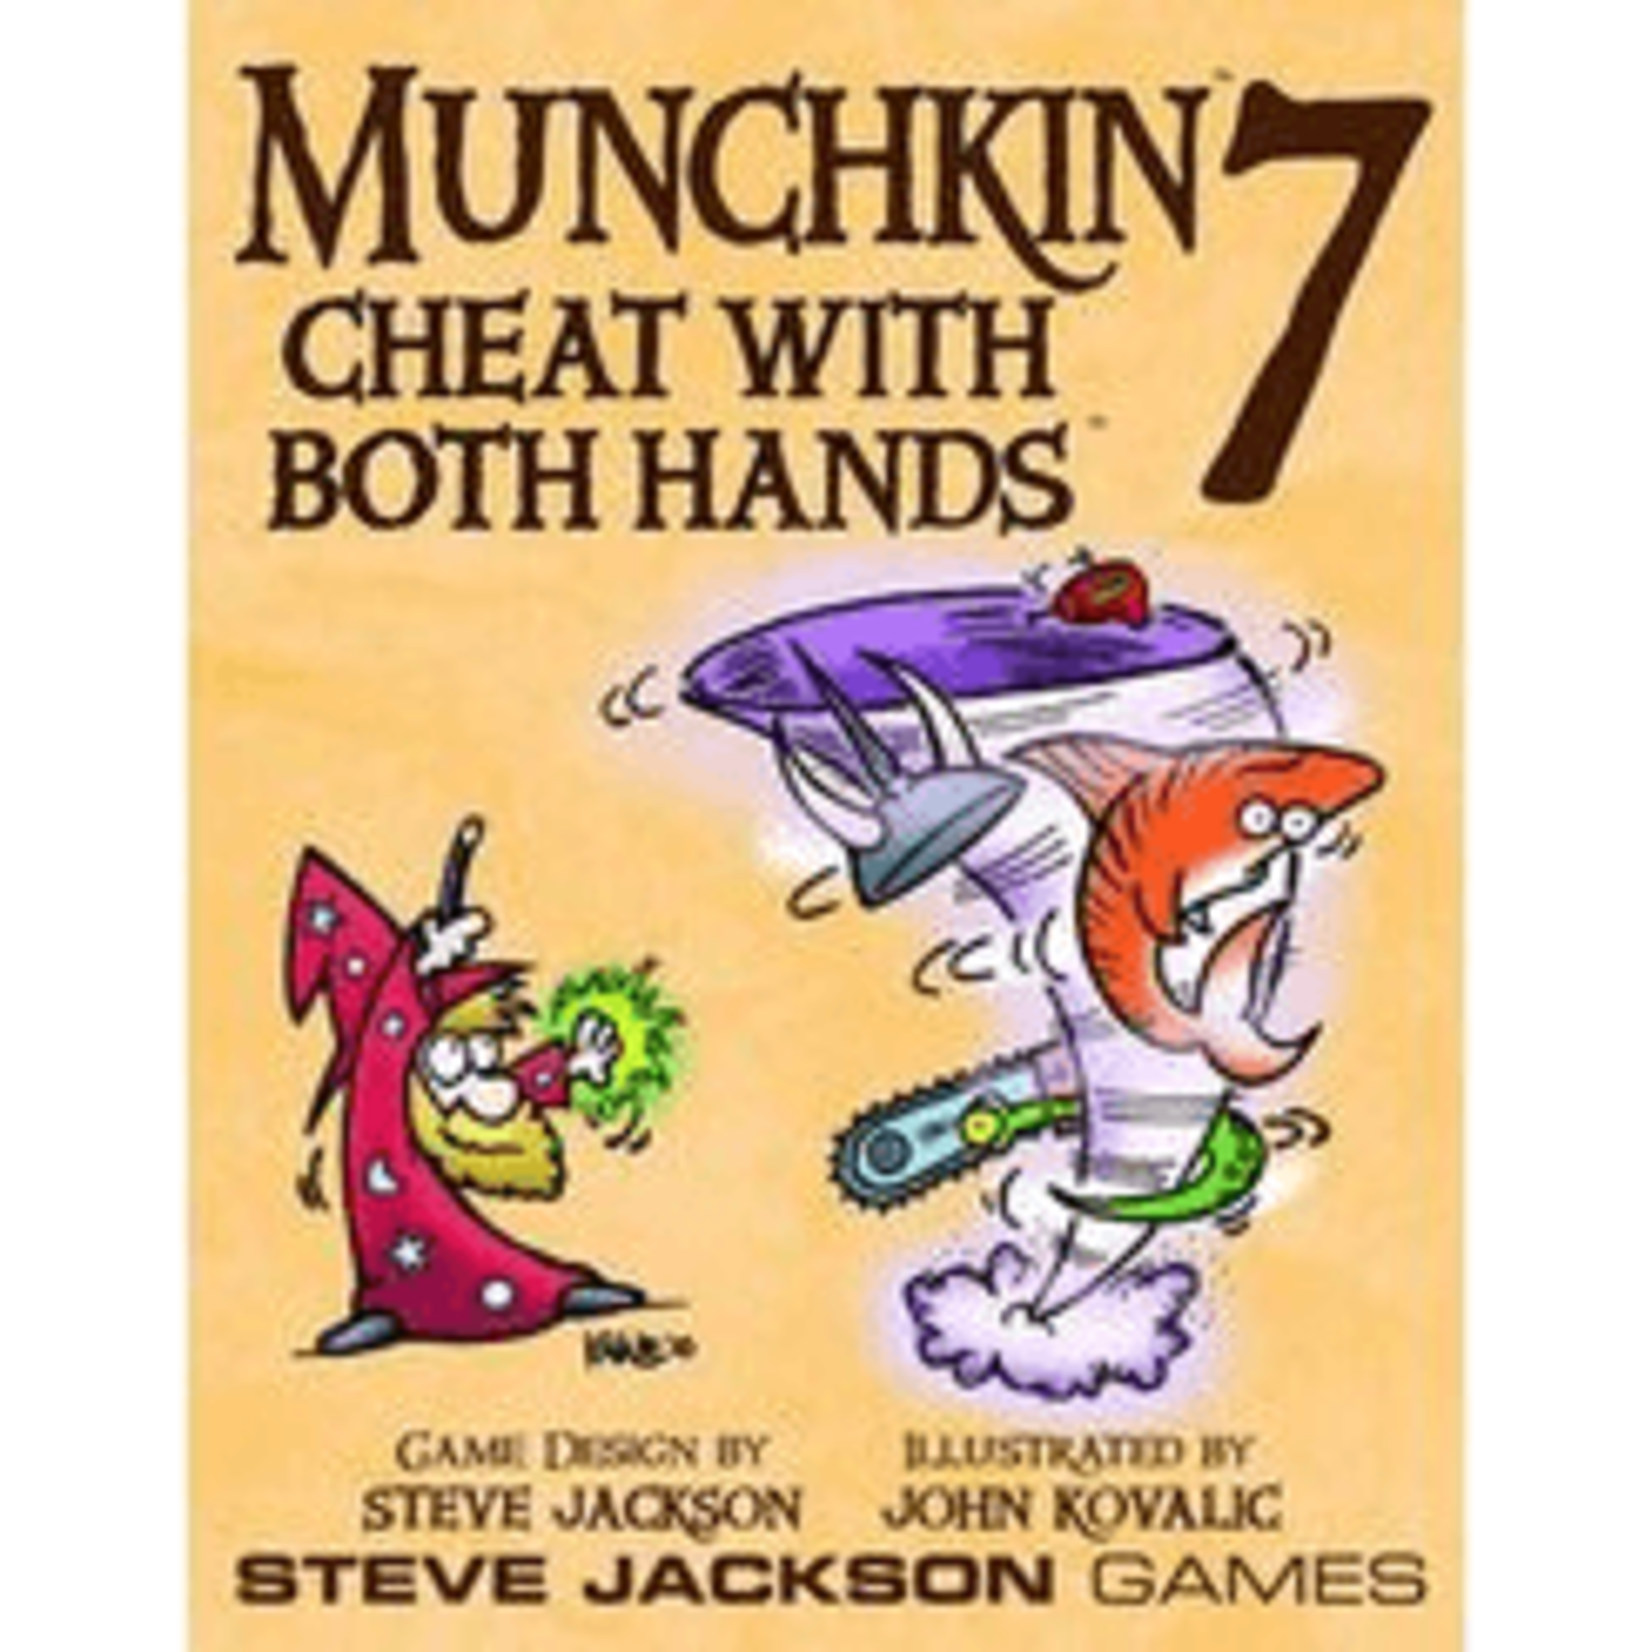 Steve Jackson Games Munchkin 7: Cheat With Both Hands Expansion